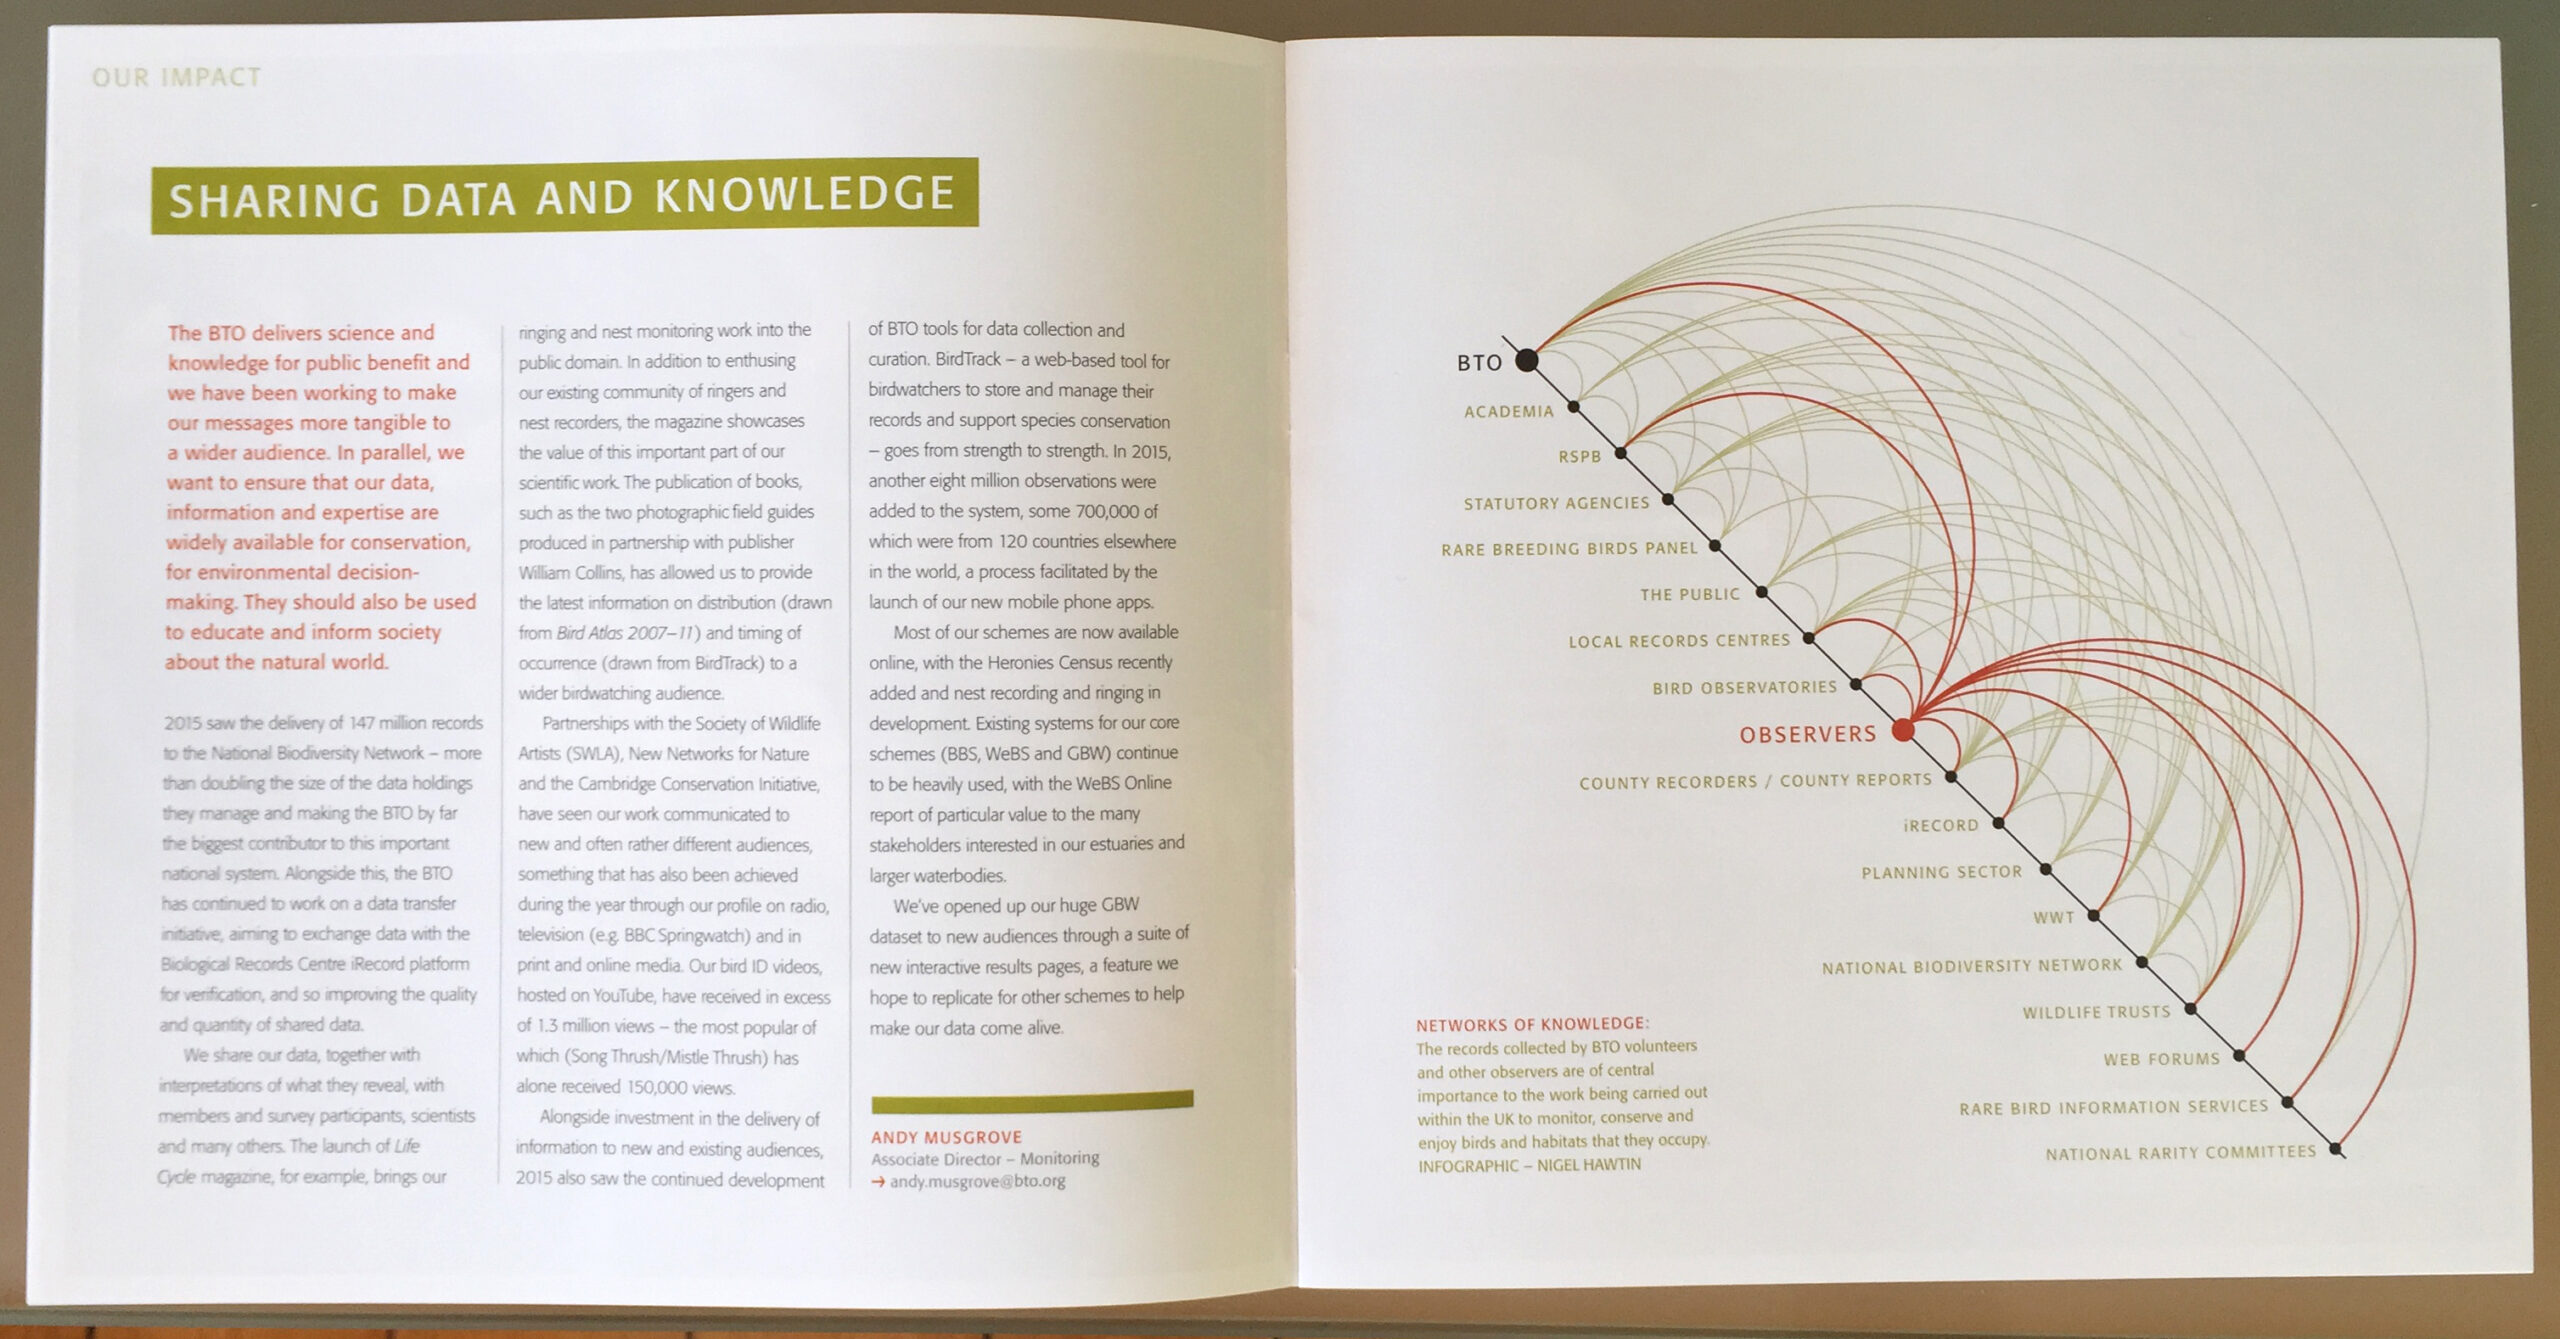 BTO Knowledge network